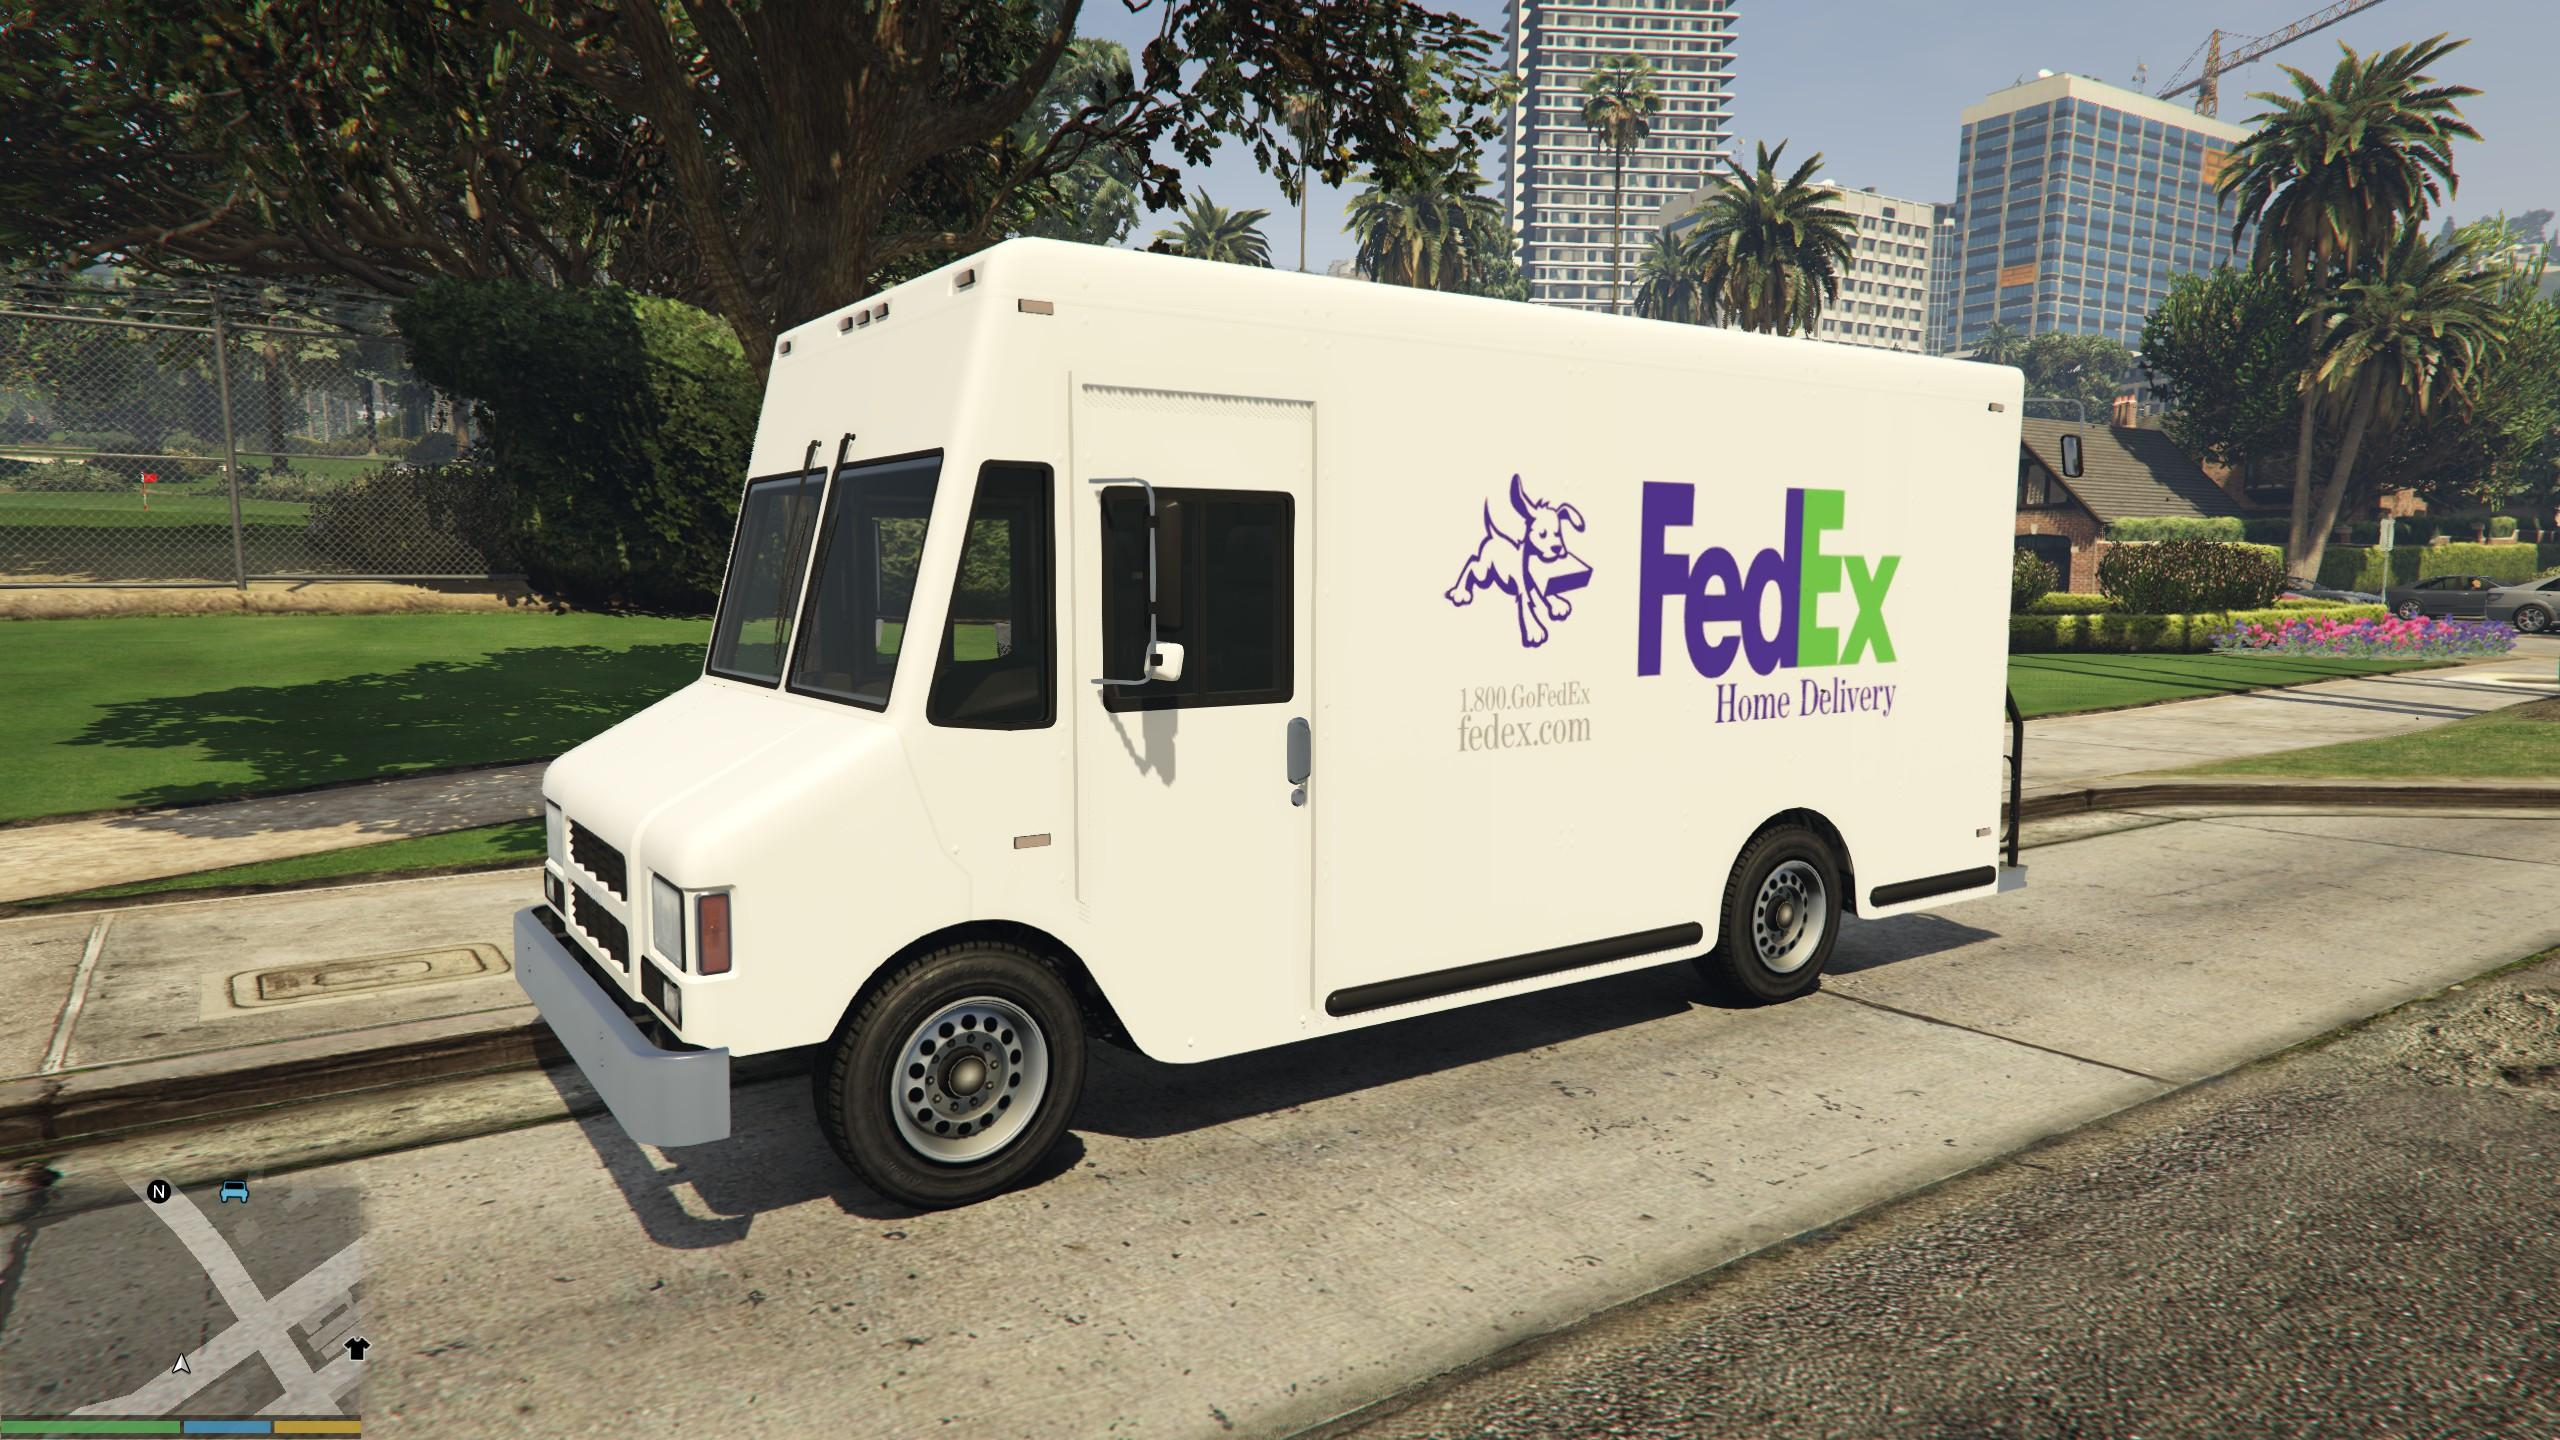 Fedex home delivery